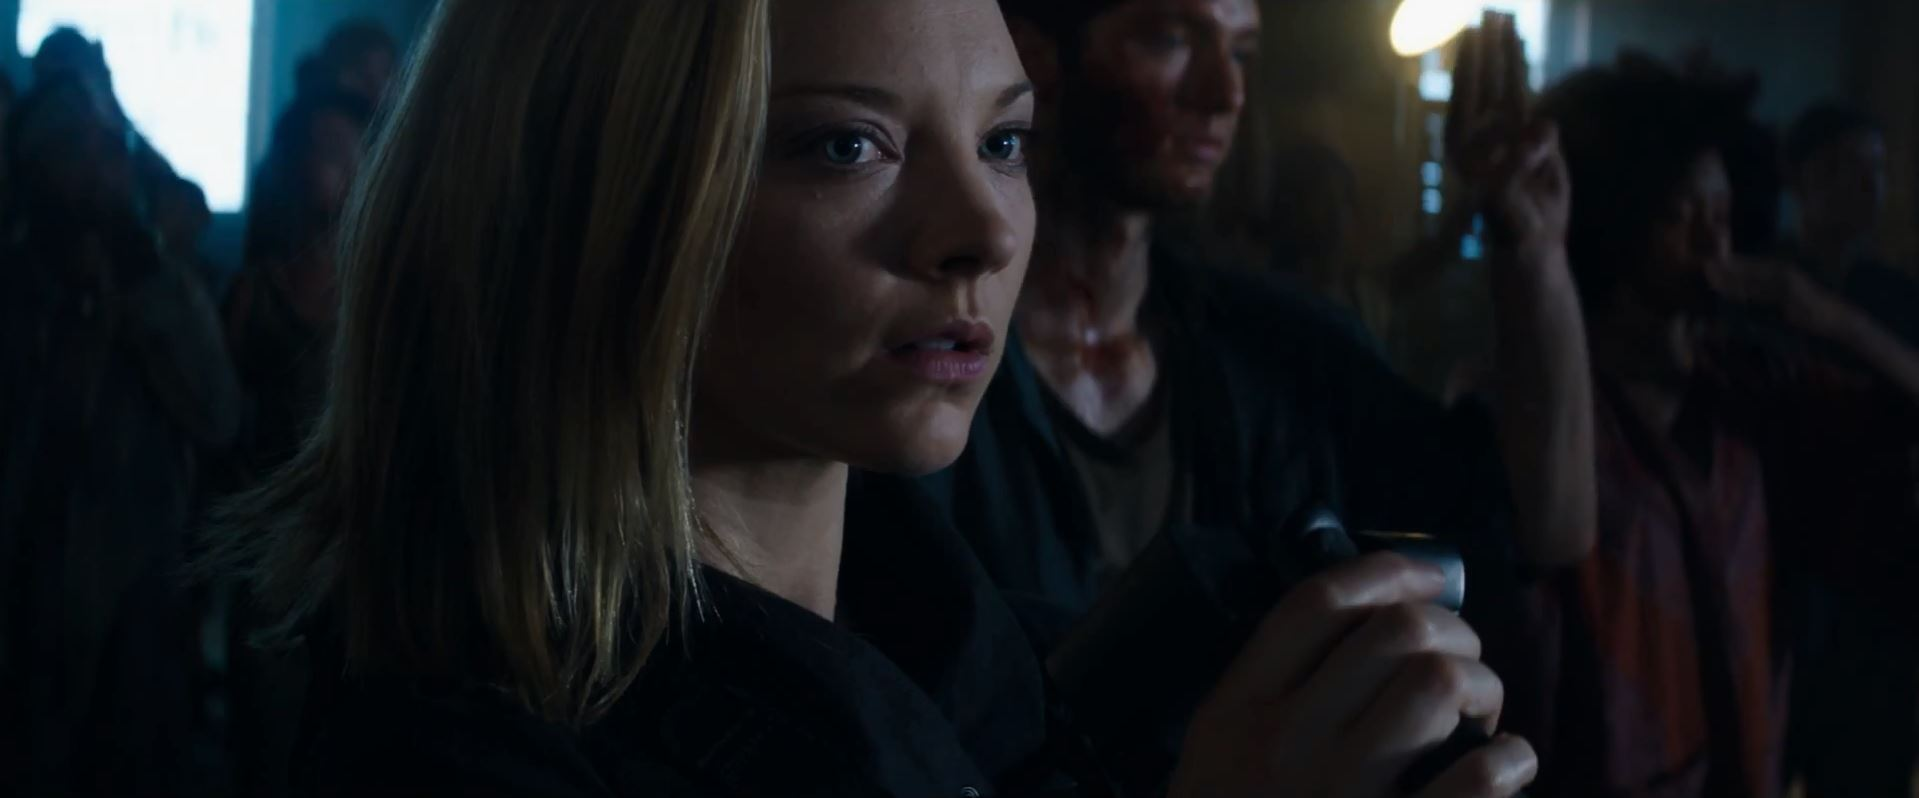 The Hunger Games Mockingjay Part 1 Trailer - Natalie Dormer as Cressida